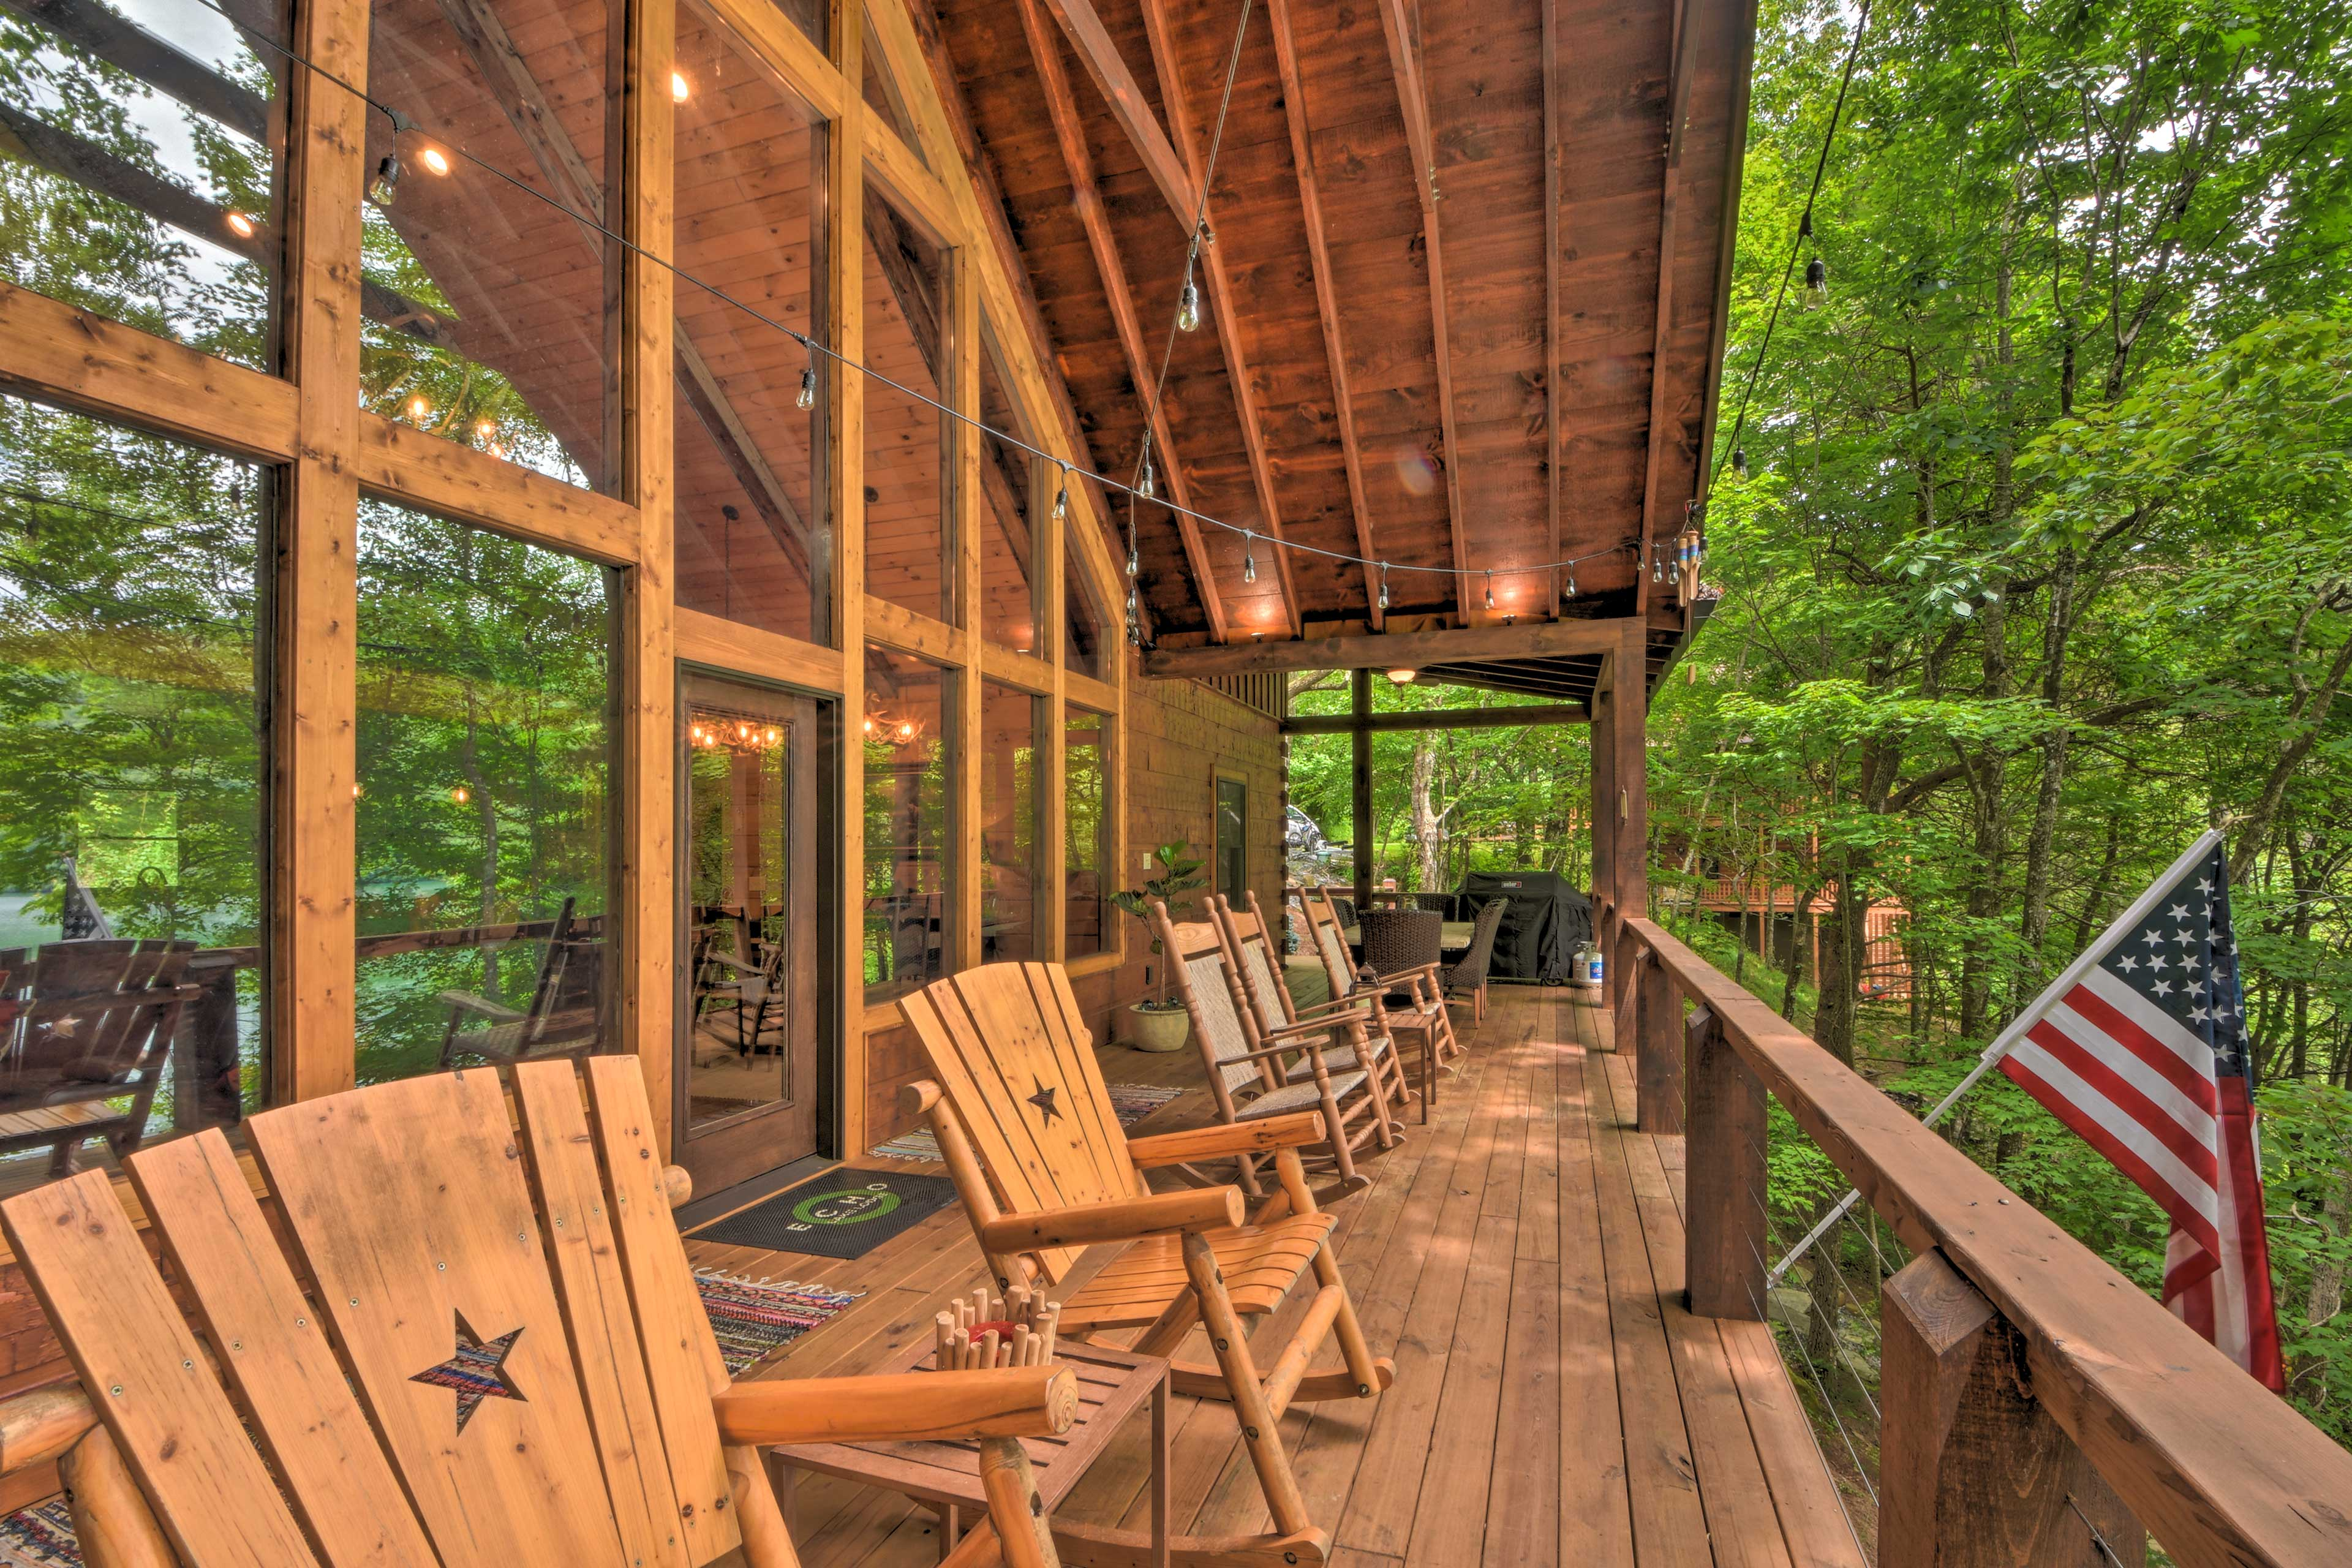 Sit back and relax on the deck.